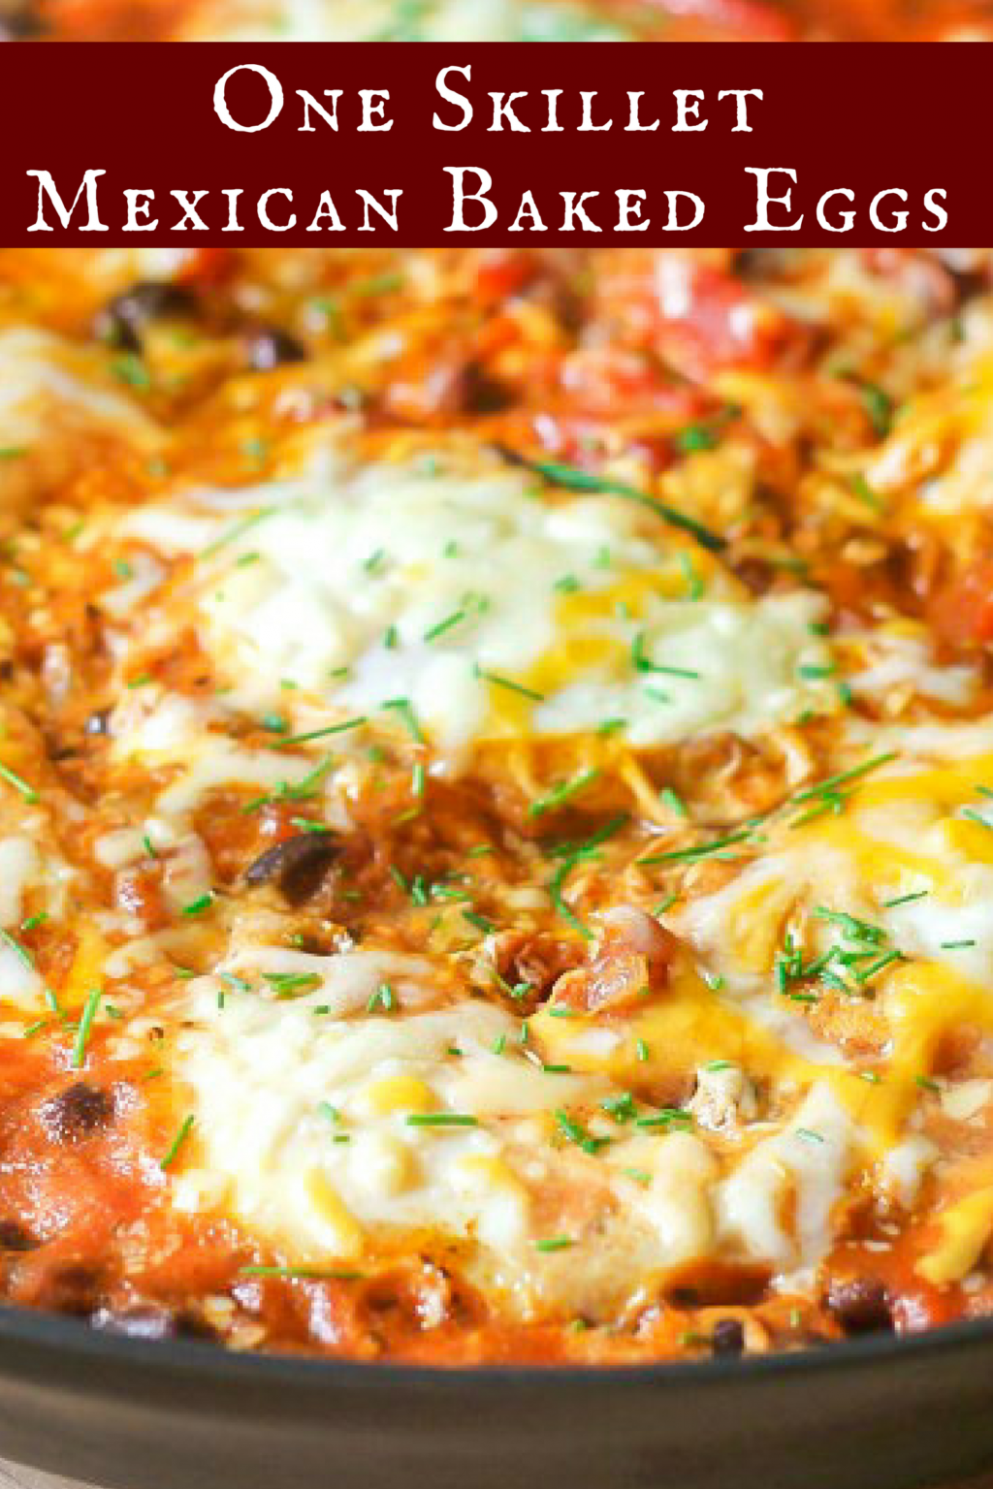 Mexican Baked Eggs (One Skillet)